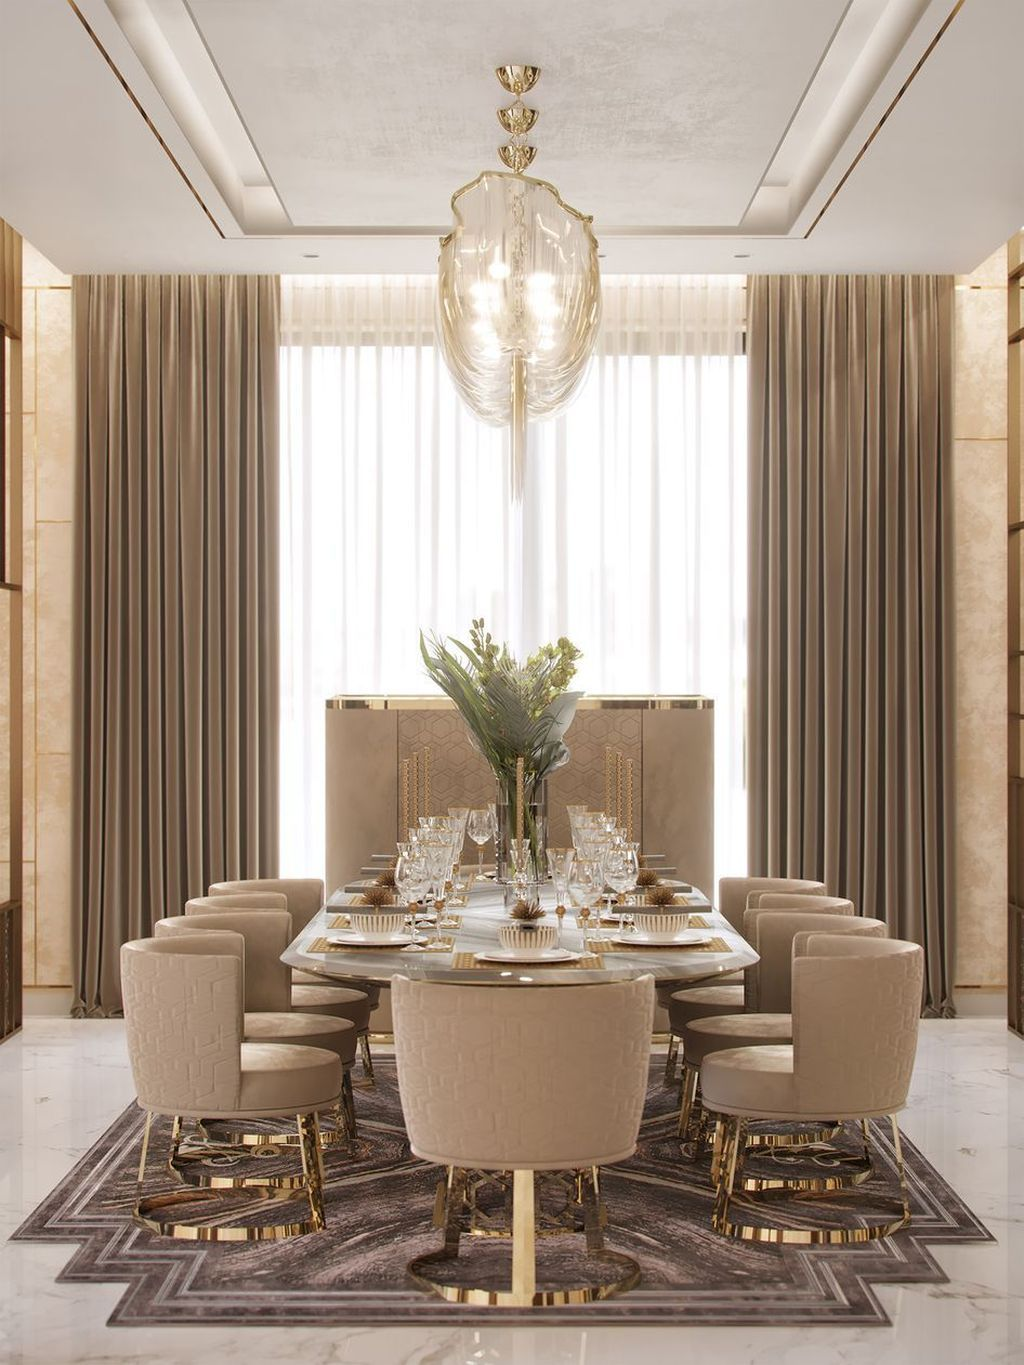 30 Awesome Dining Room Designs Ideas In Industrial Style Trenduhome Dining Room Interiors Elegant Dining Room Luxury Dining Room